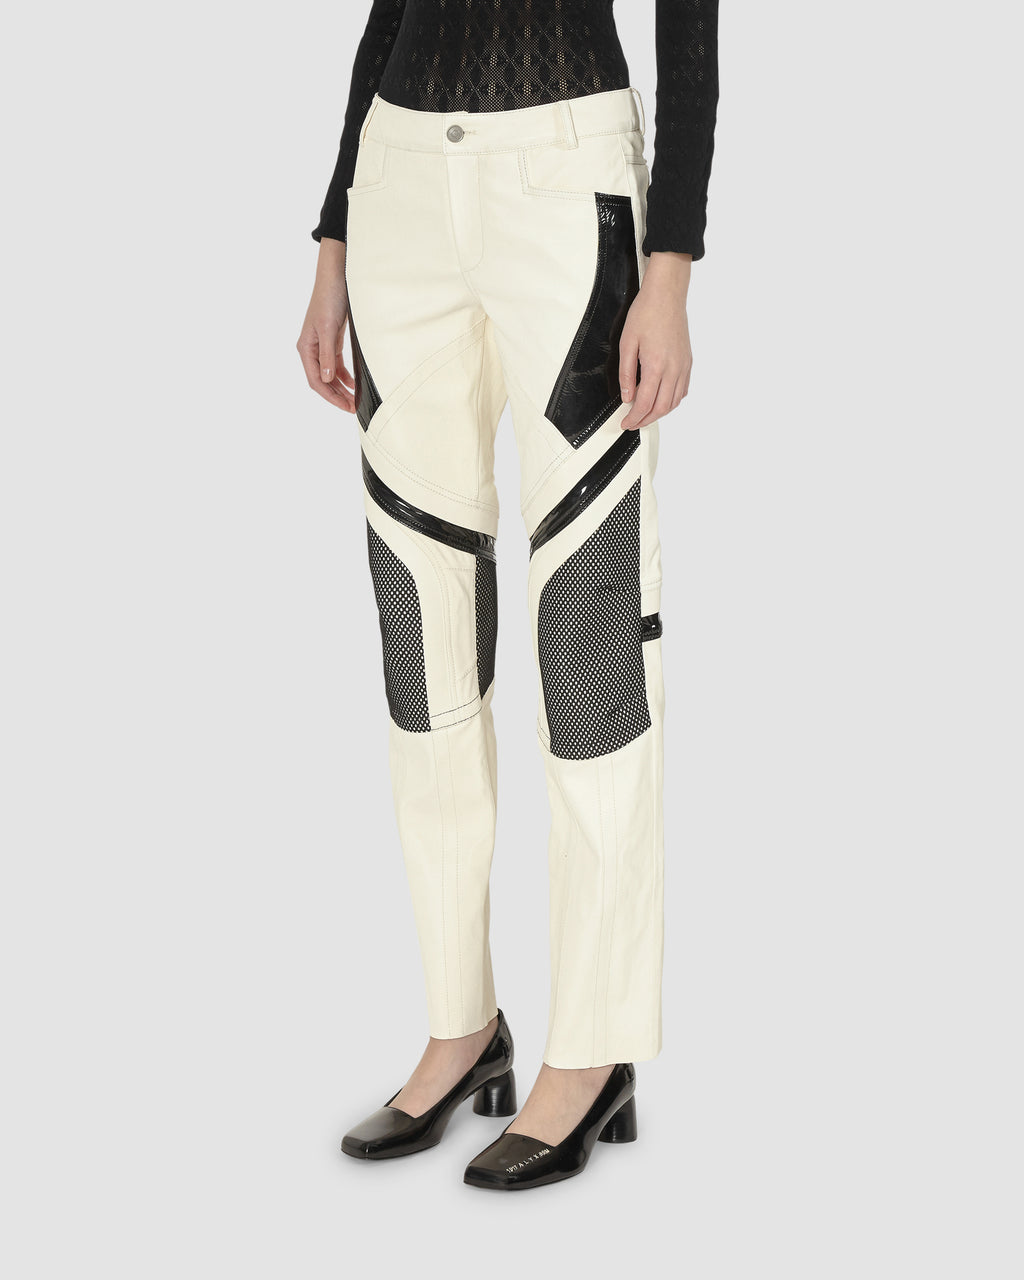 1017 ALYX 9SM | ZONE-9 MOTO PANT | Pants | Google Shopping, Pants, S20, S20EXSH, Trousers, WHITE, Woman, WOMEN